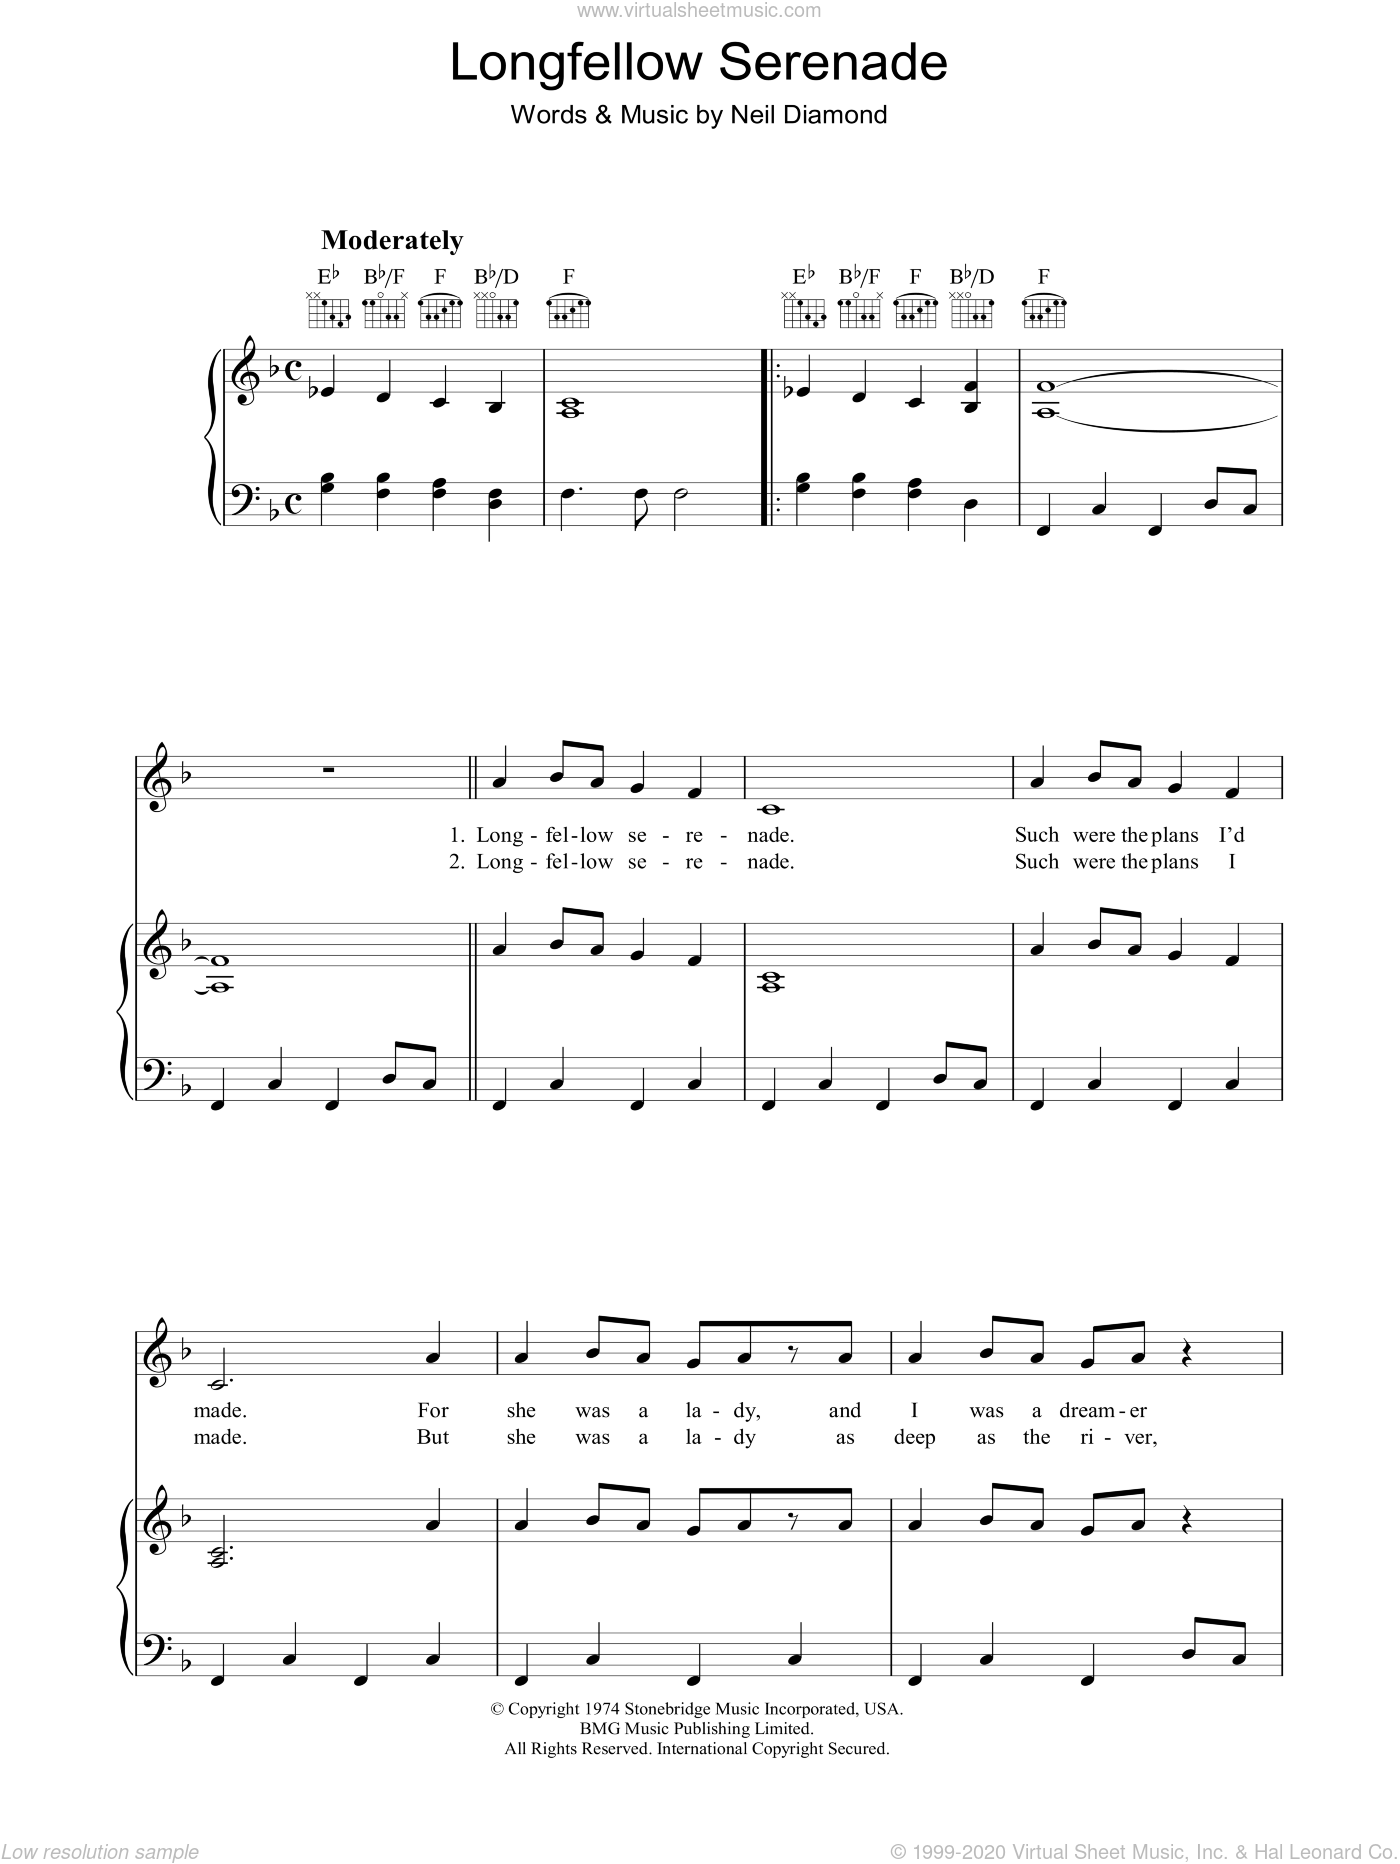 Longfellow Serenade sheet music for voice, piano or guitar by Neil Diamond. Score Image Preview.